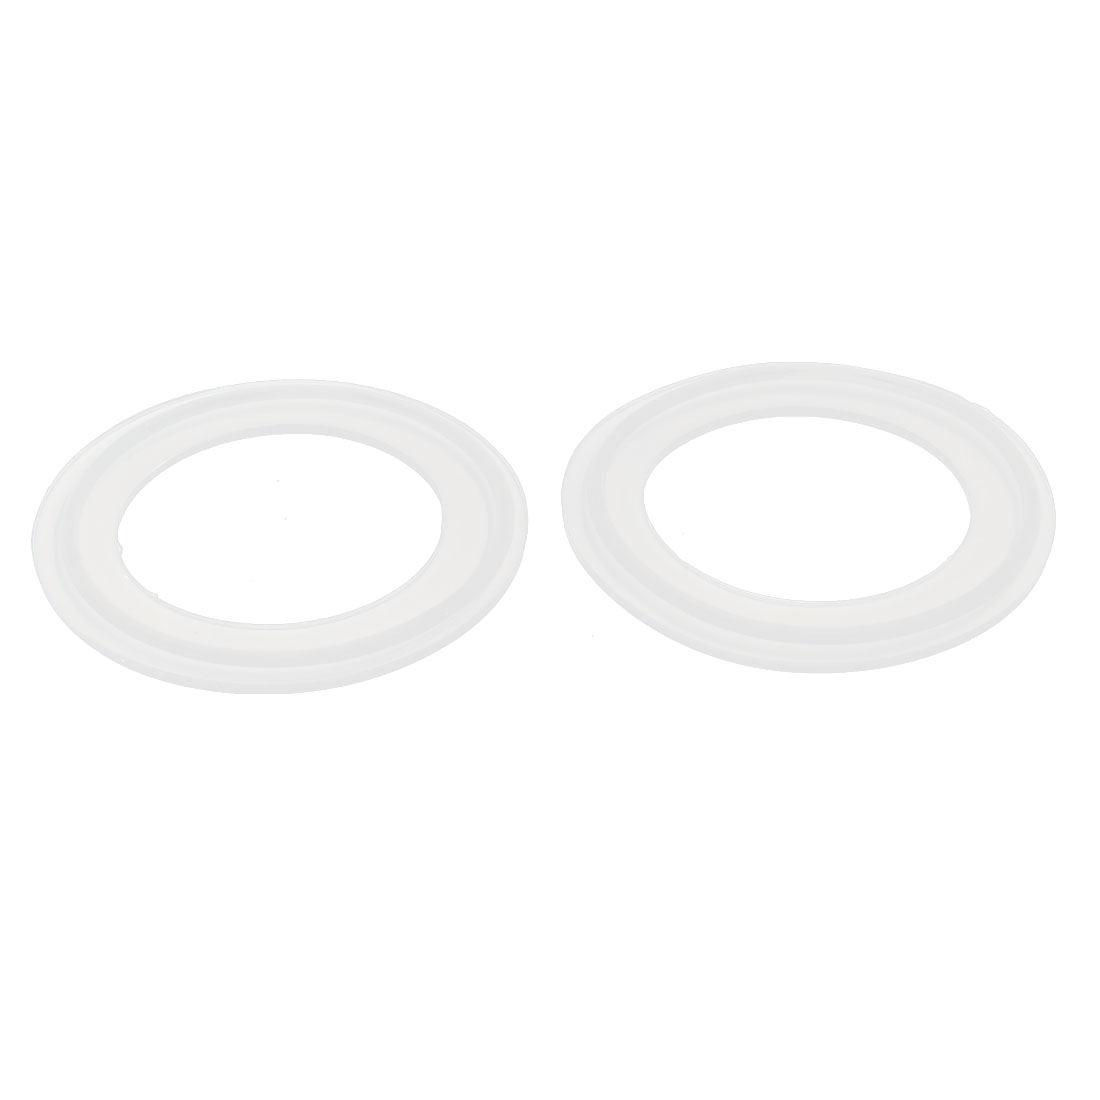 "45mm Silicone Gasket 2pcs for 2"" Tri Clamp Sanitary Pipe Fittings Ferrules"